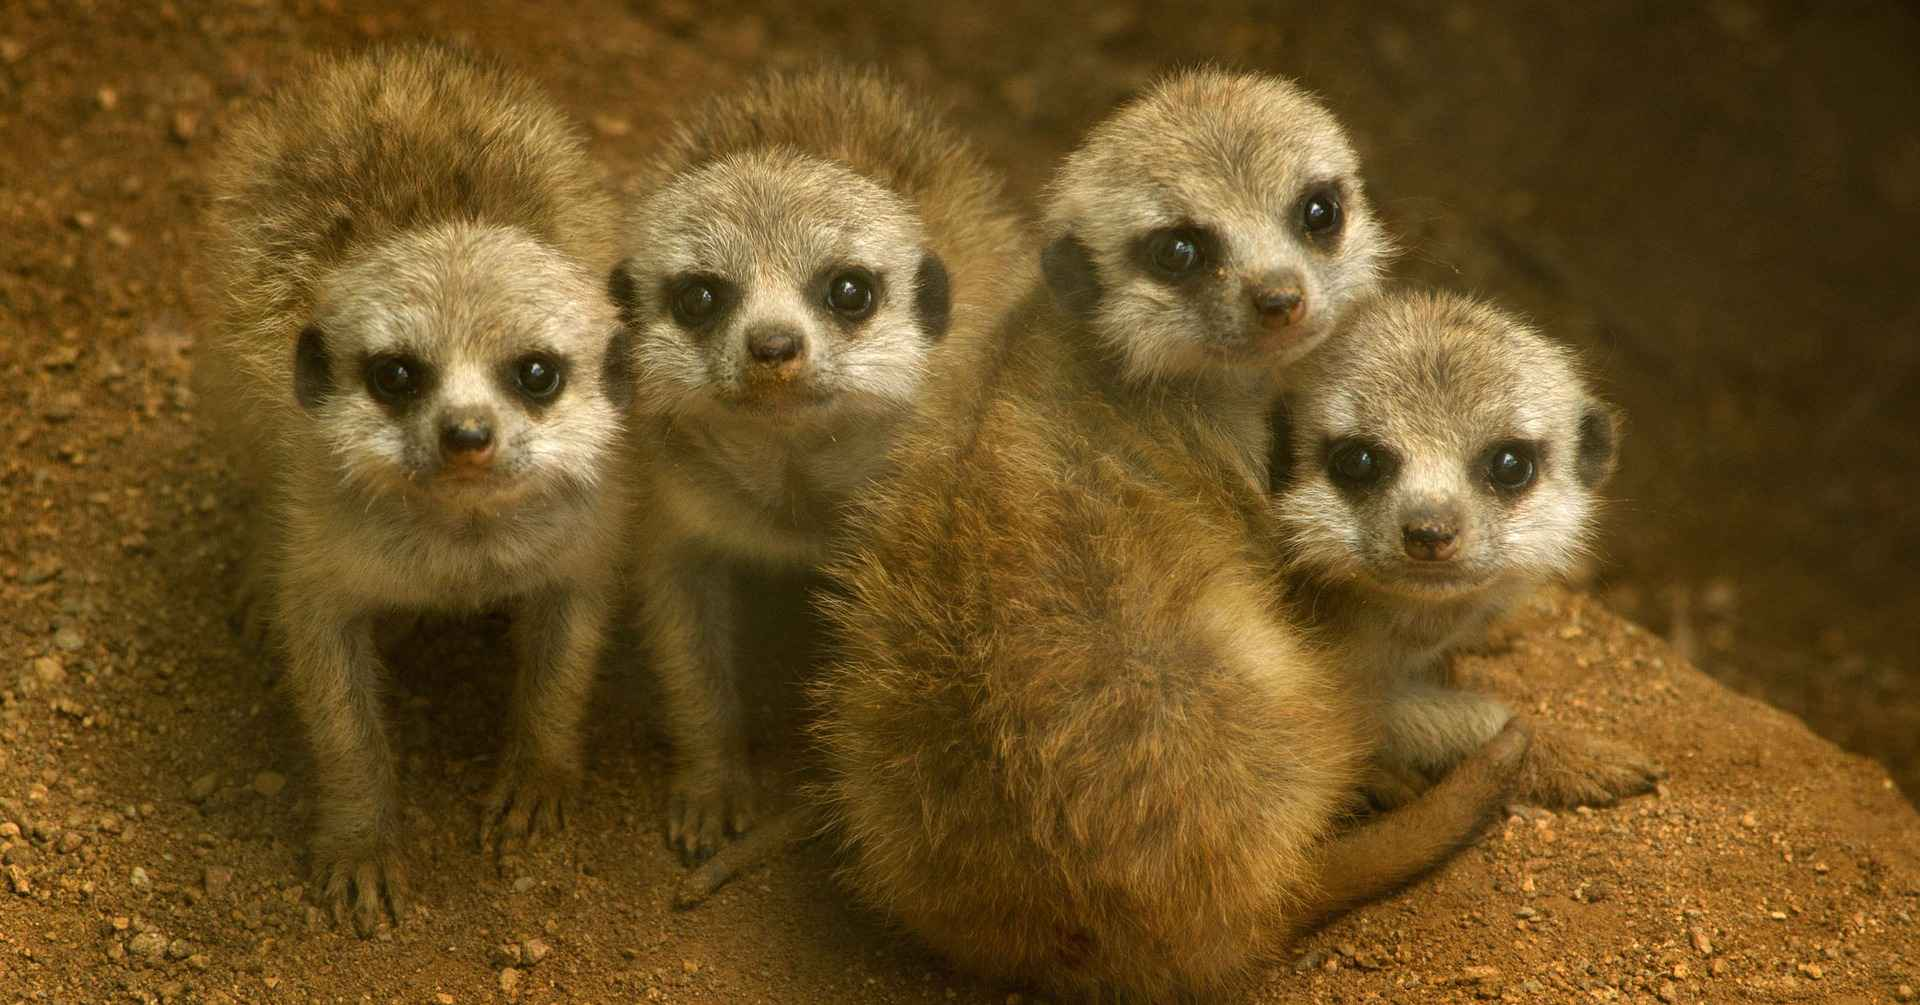 Heritage lottery funding means green light for Redbridge zoo